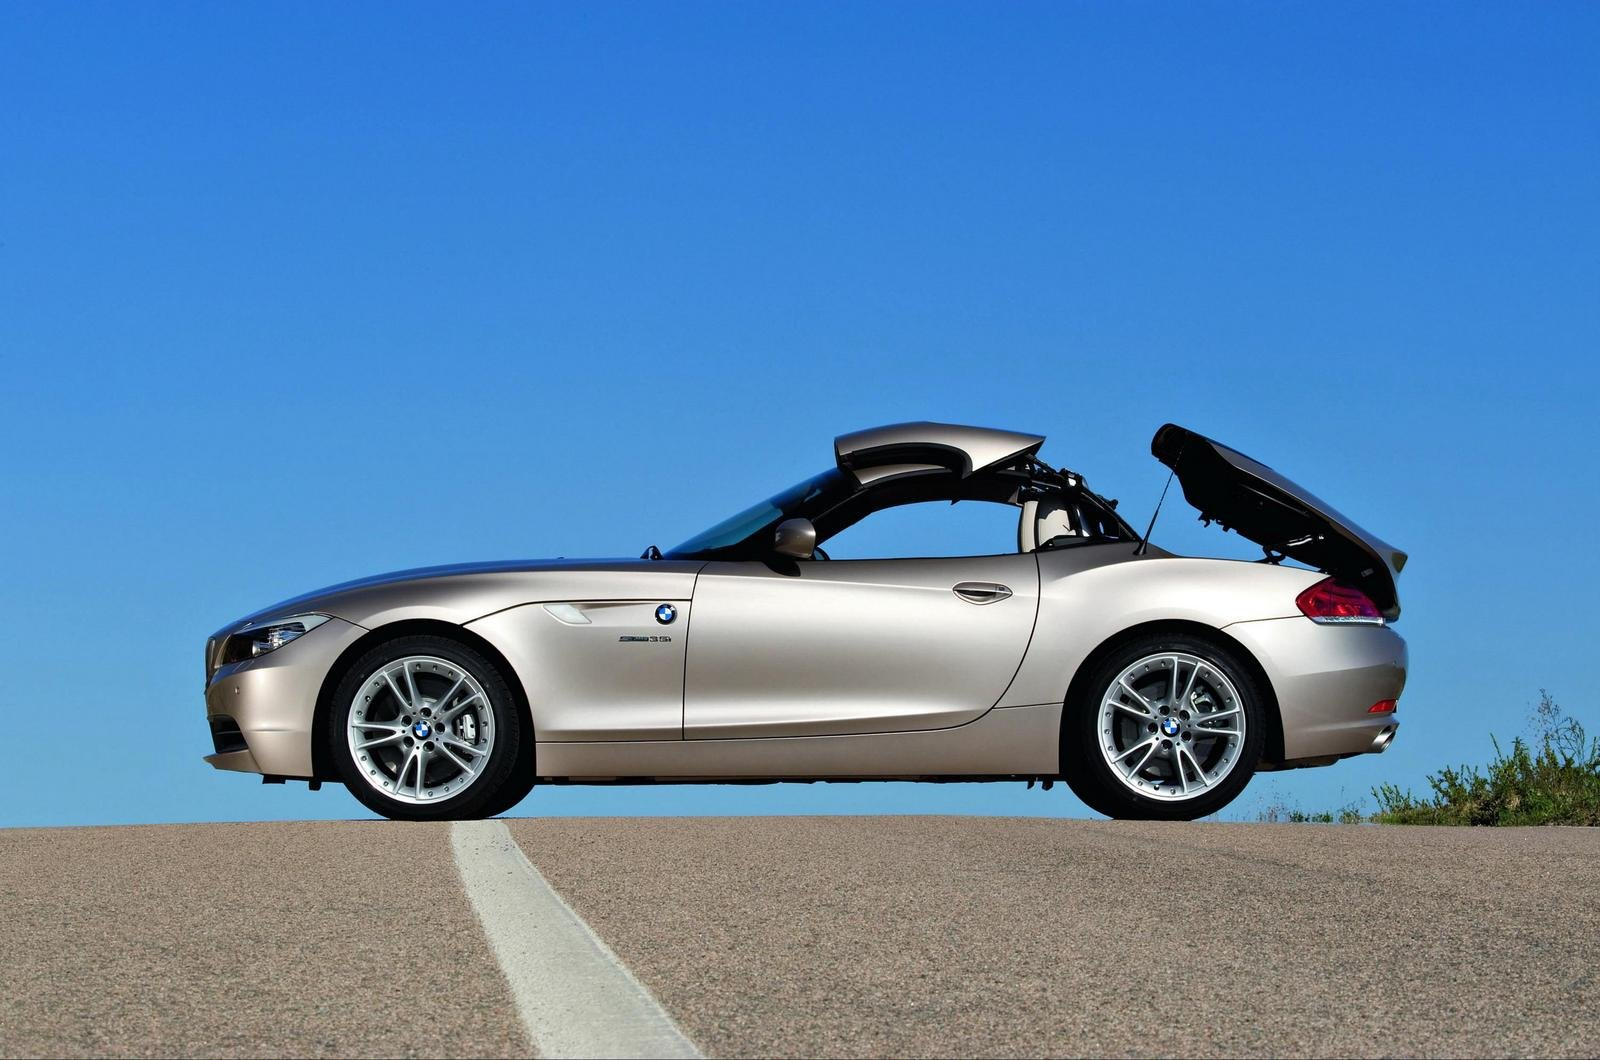 2009 bmw z4 roadster picture 277252 car review top speed. Black Bedroom Furniture Sets. Home Design Ideas